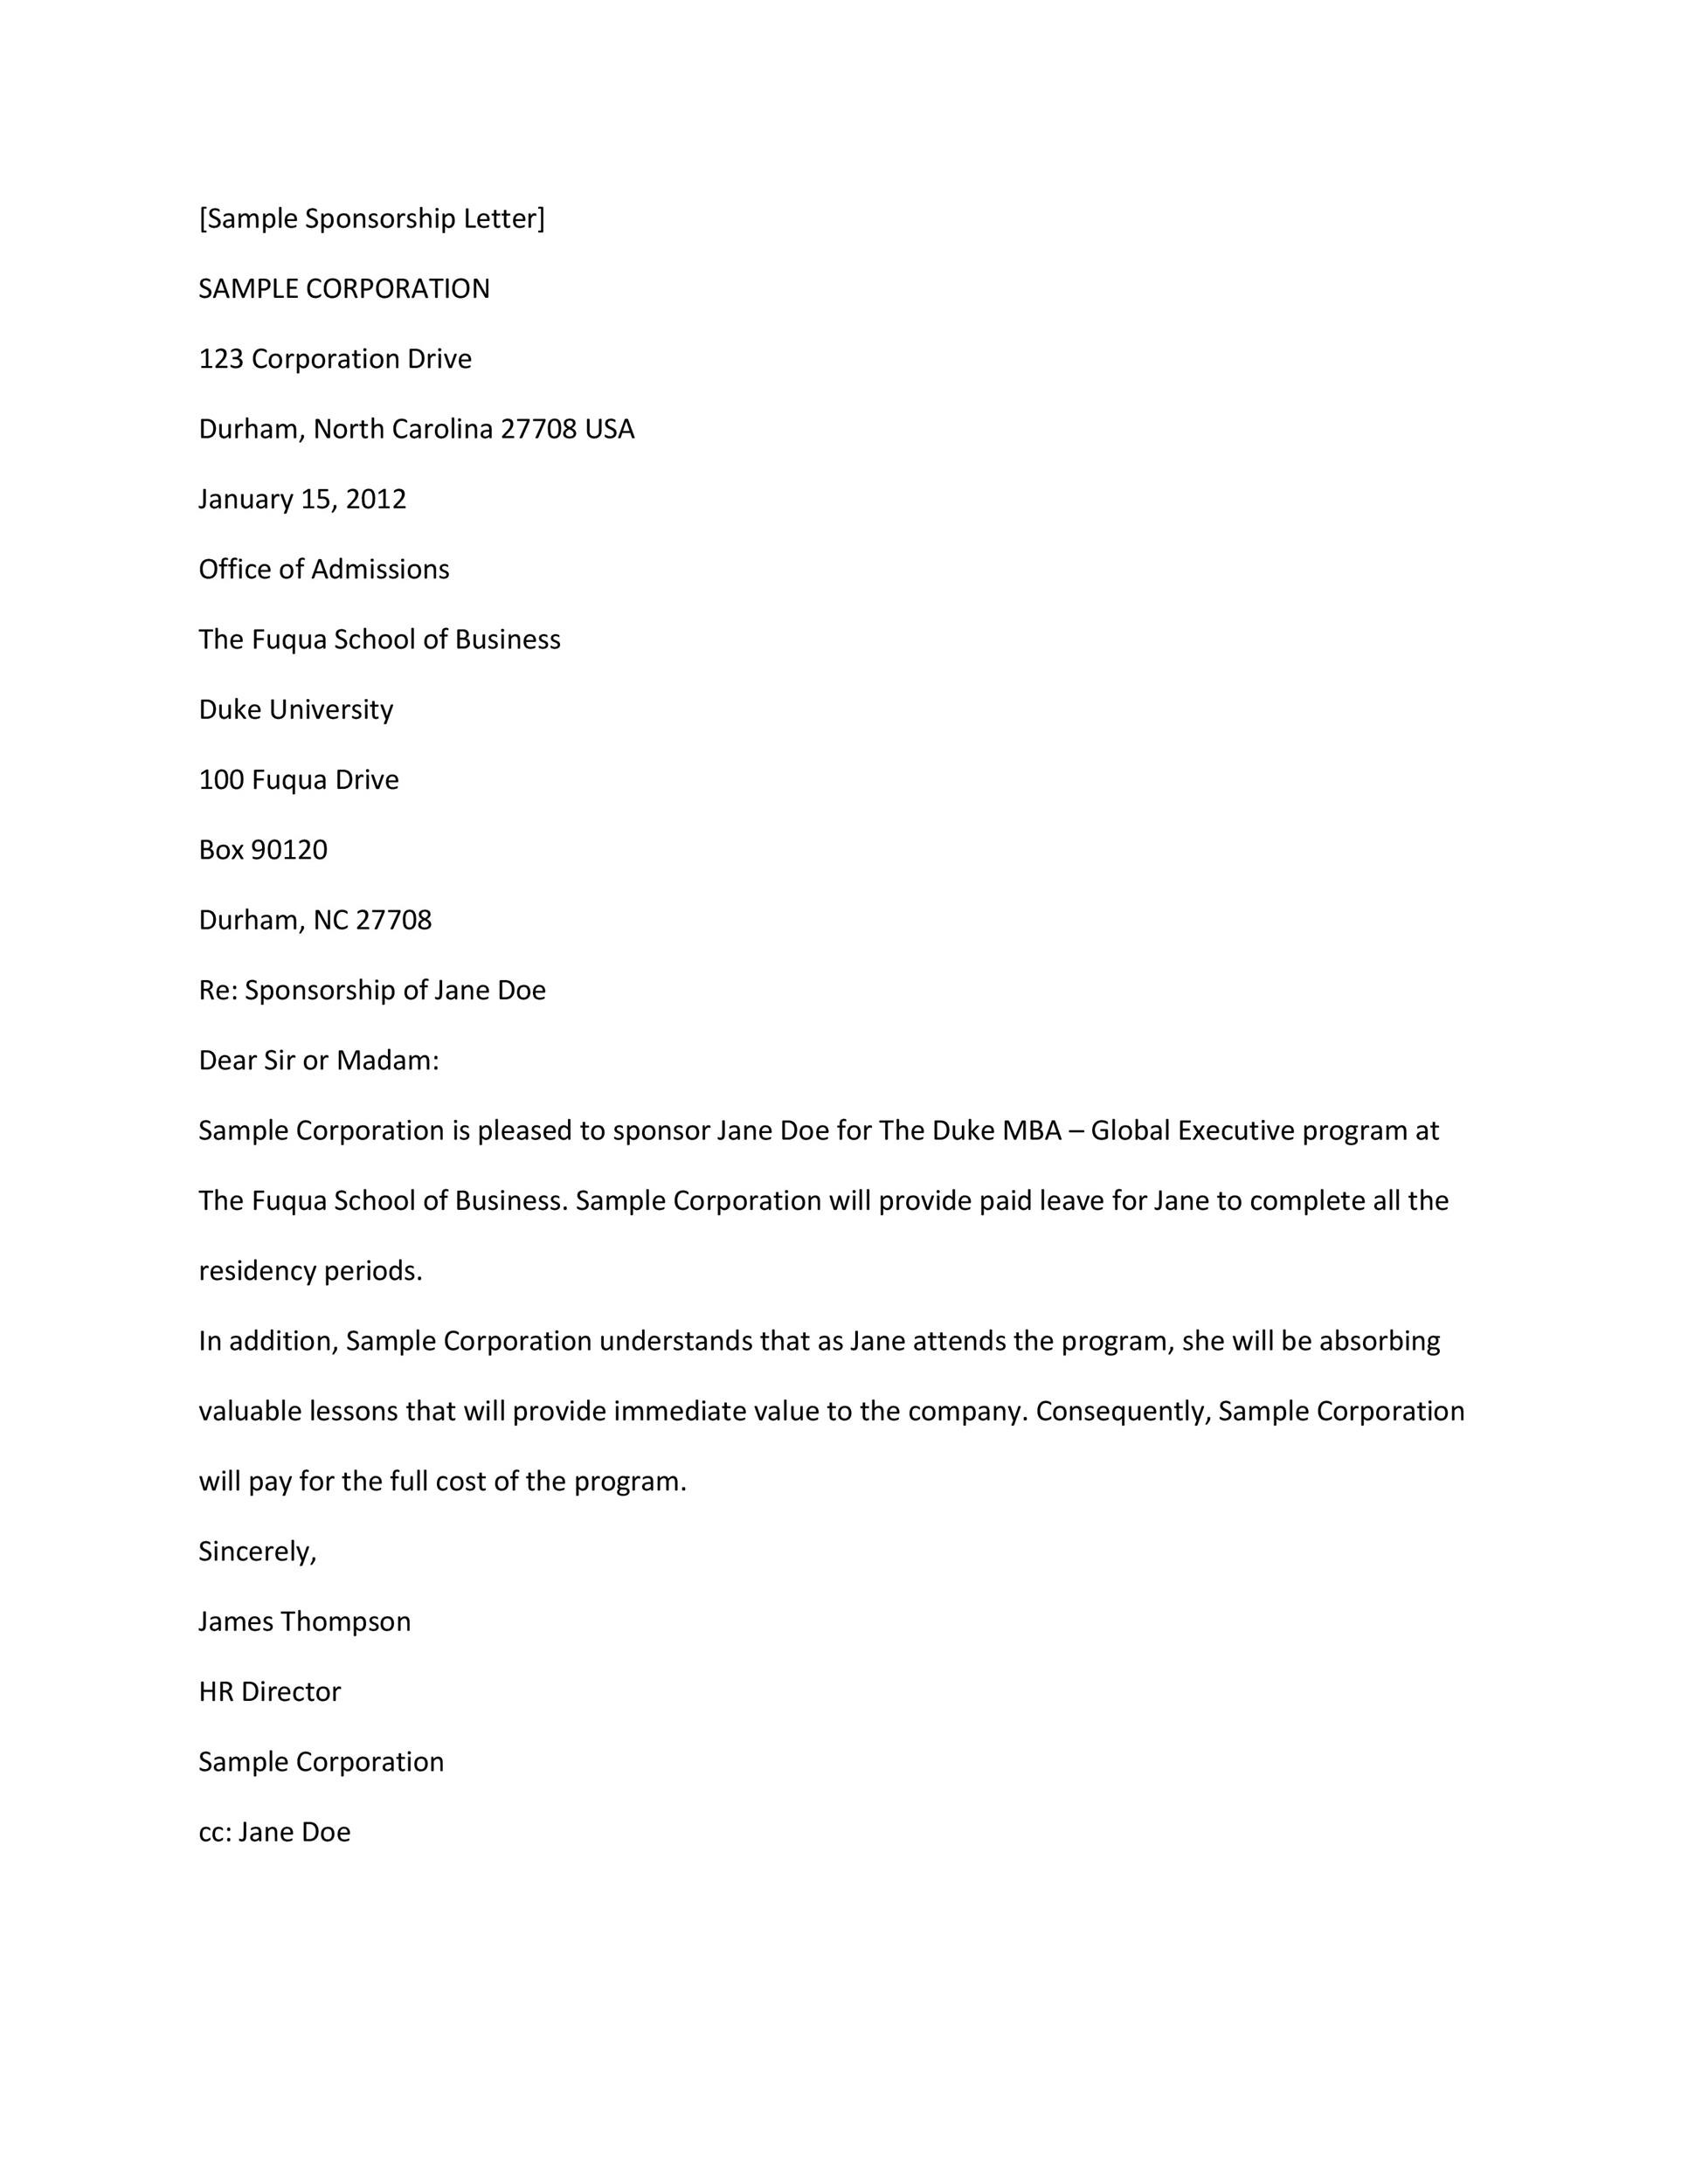 40 Sponsorship Letter Sponsorship Proposal Templates – Proposal Letter for Sponsorship Sample for Event